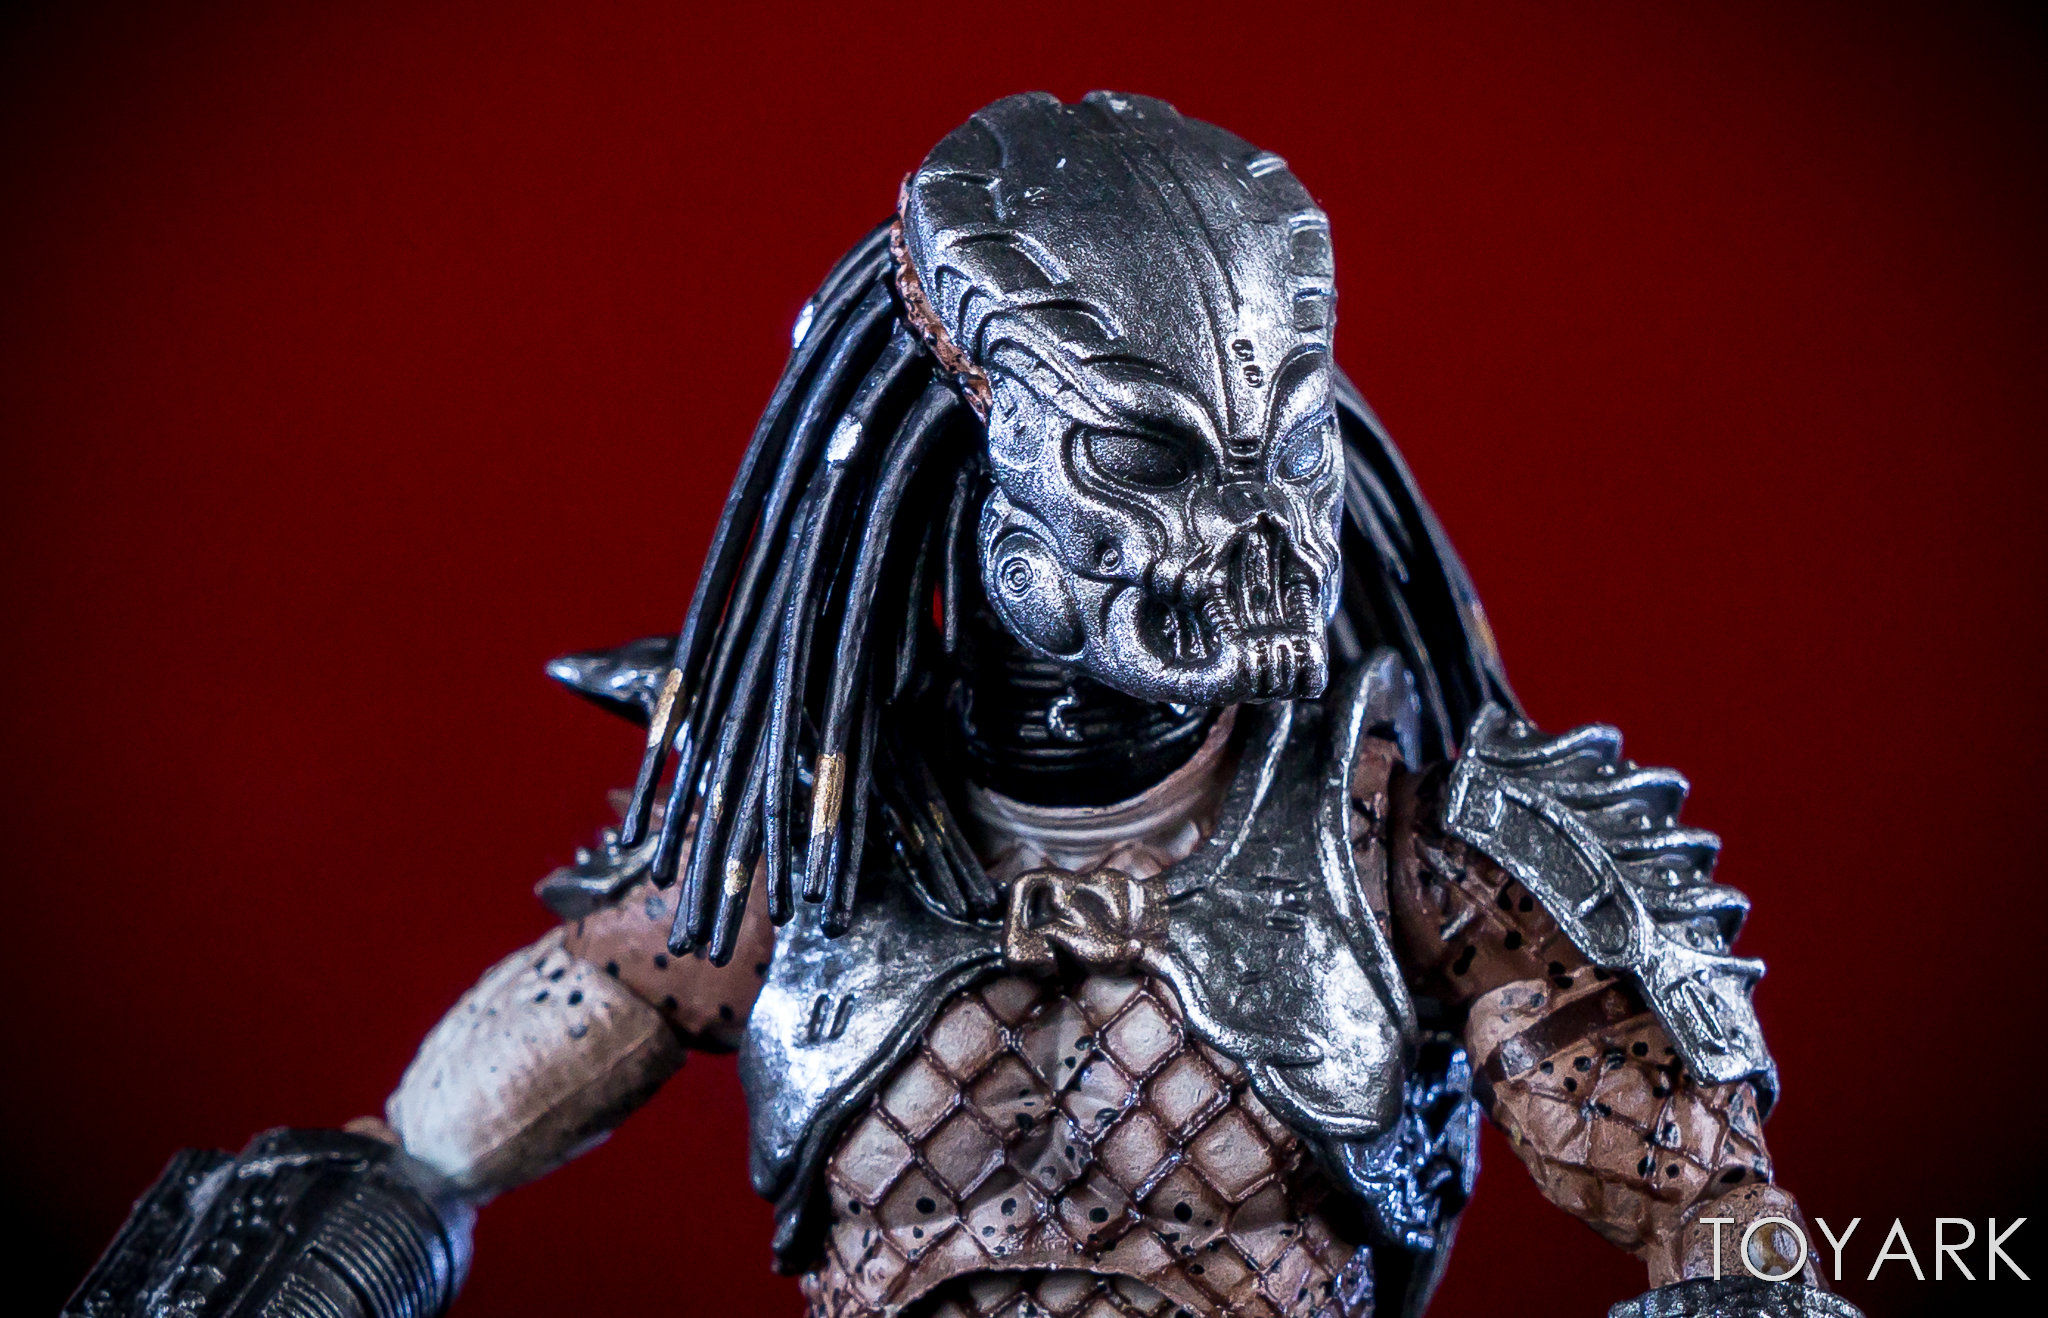 http://news.toyark.com/wp-content/uploads/sites/4/2018/03/Hiya-Predator-2-Figures-020.jpg